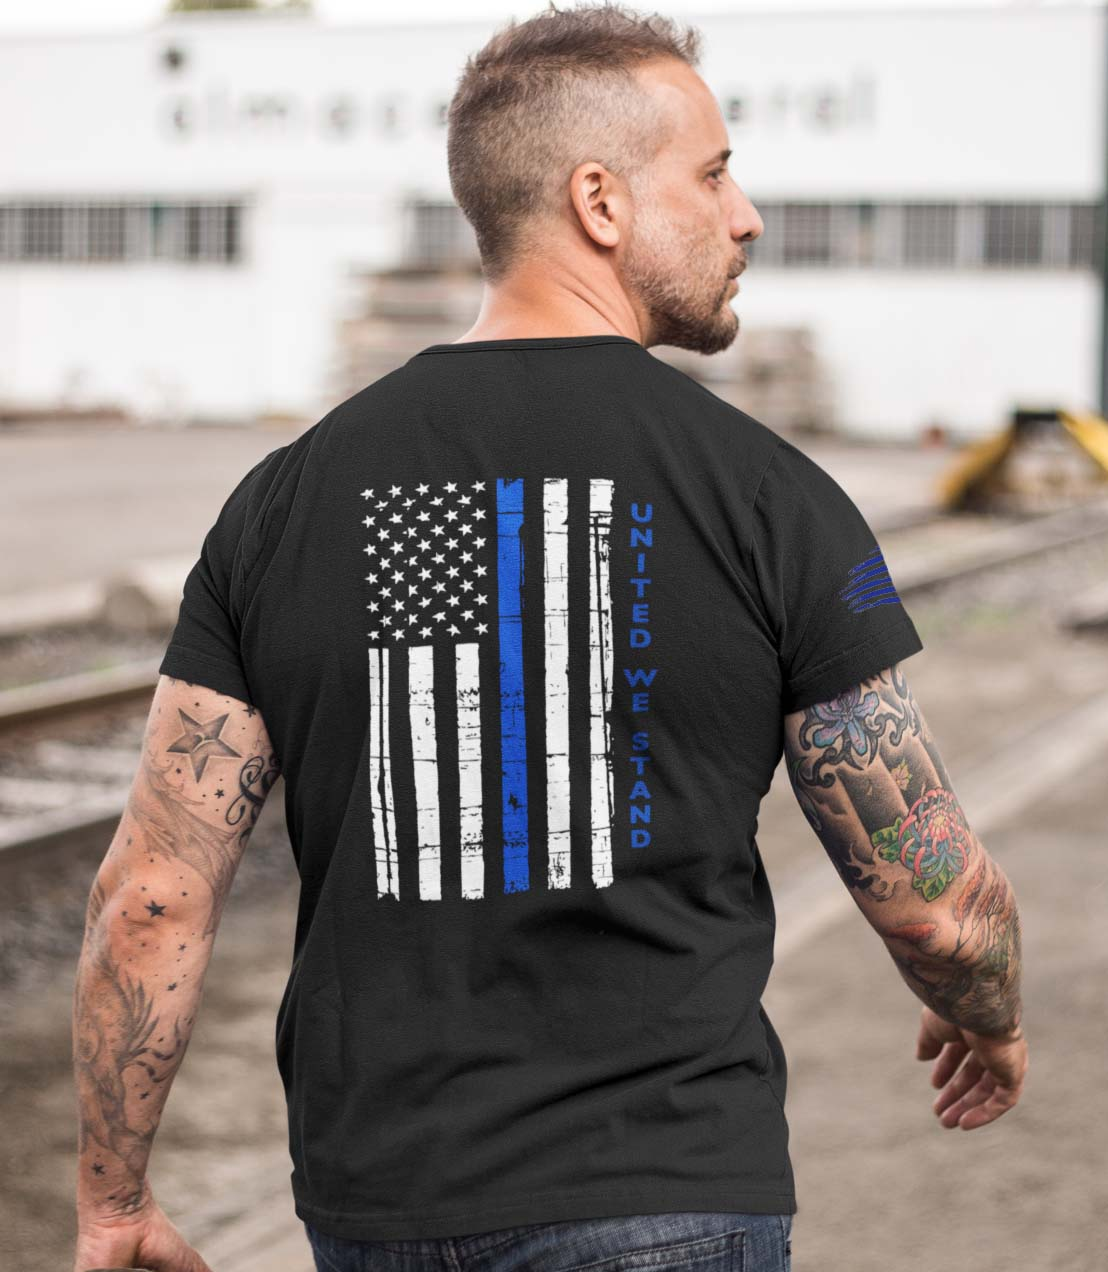 t-shirt with united we stand back for police on black mens